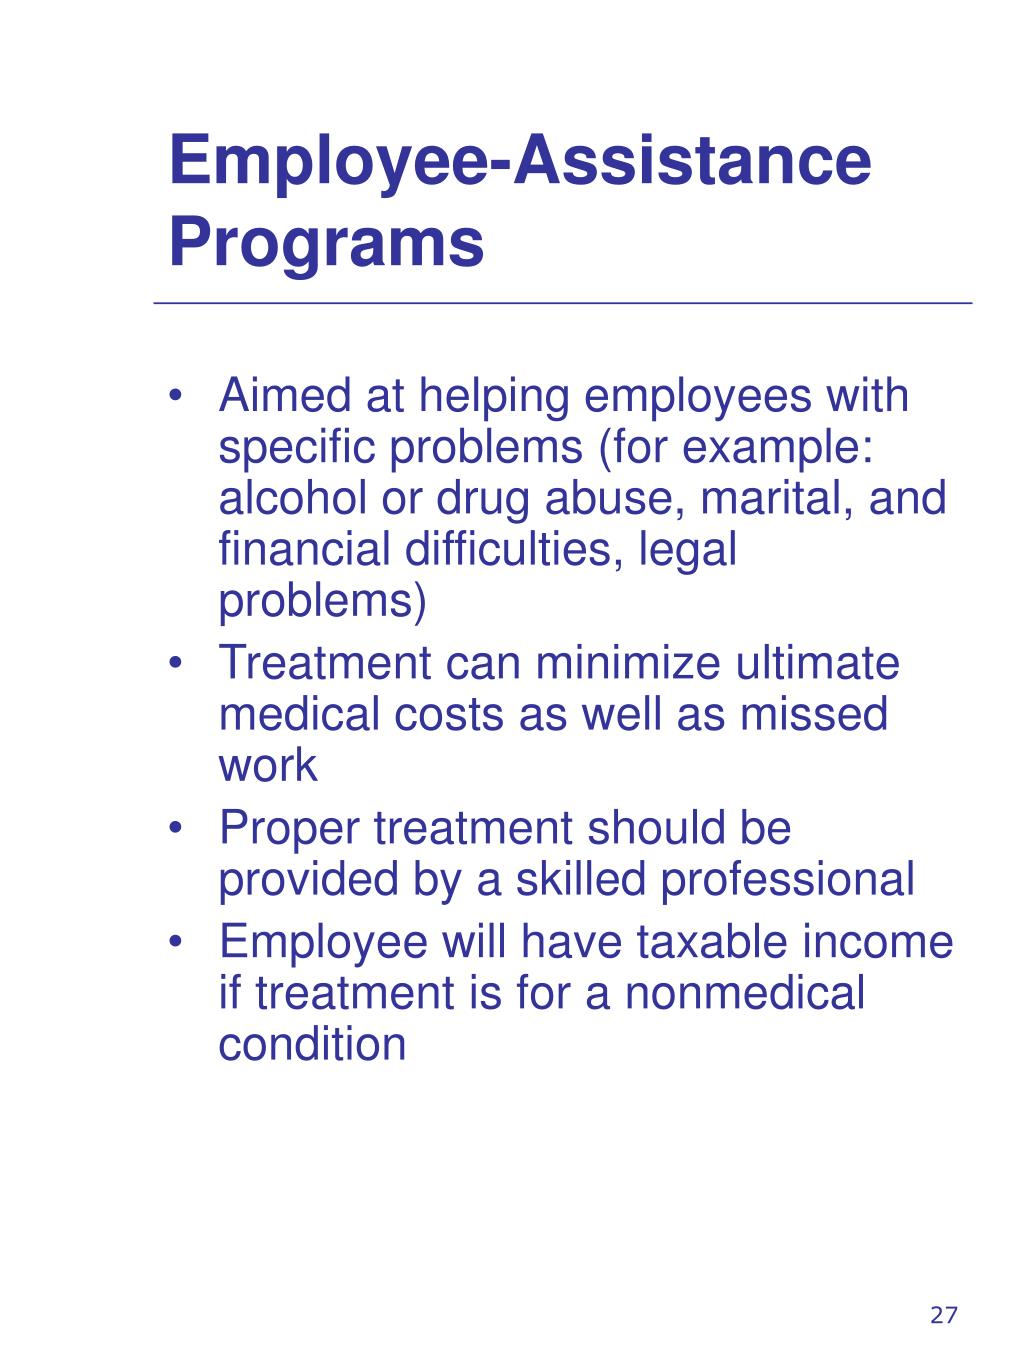 Employee-Assistance Programs